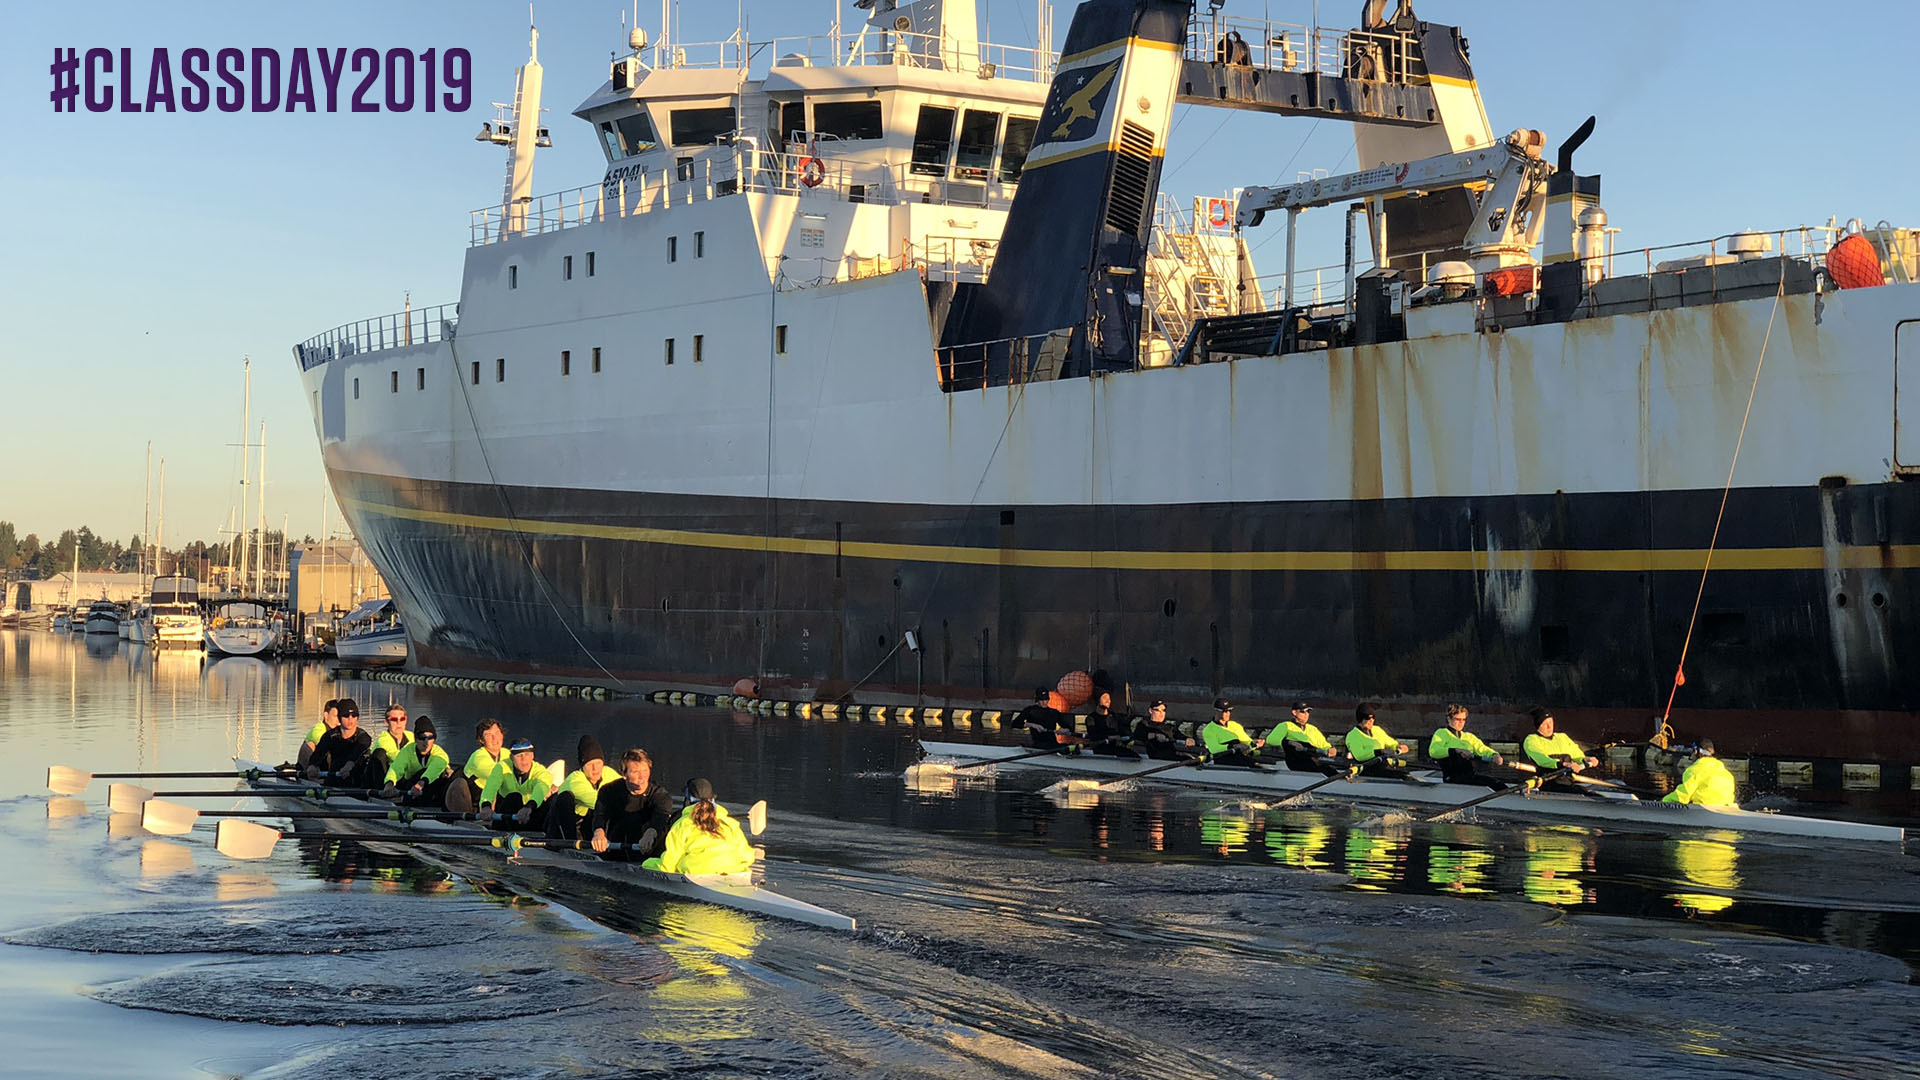 Introducing The Men's Rowing Class Of 2022 - University of